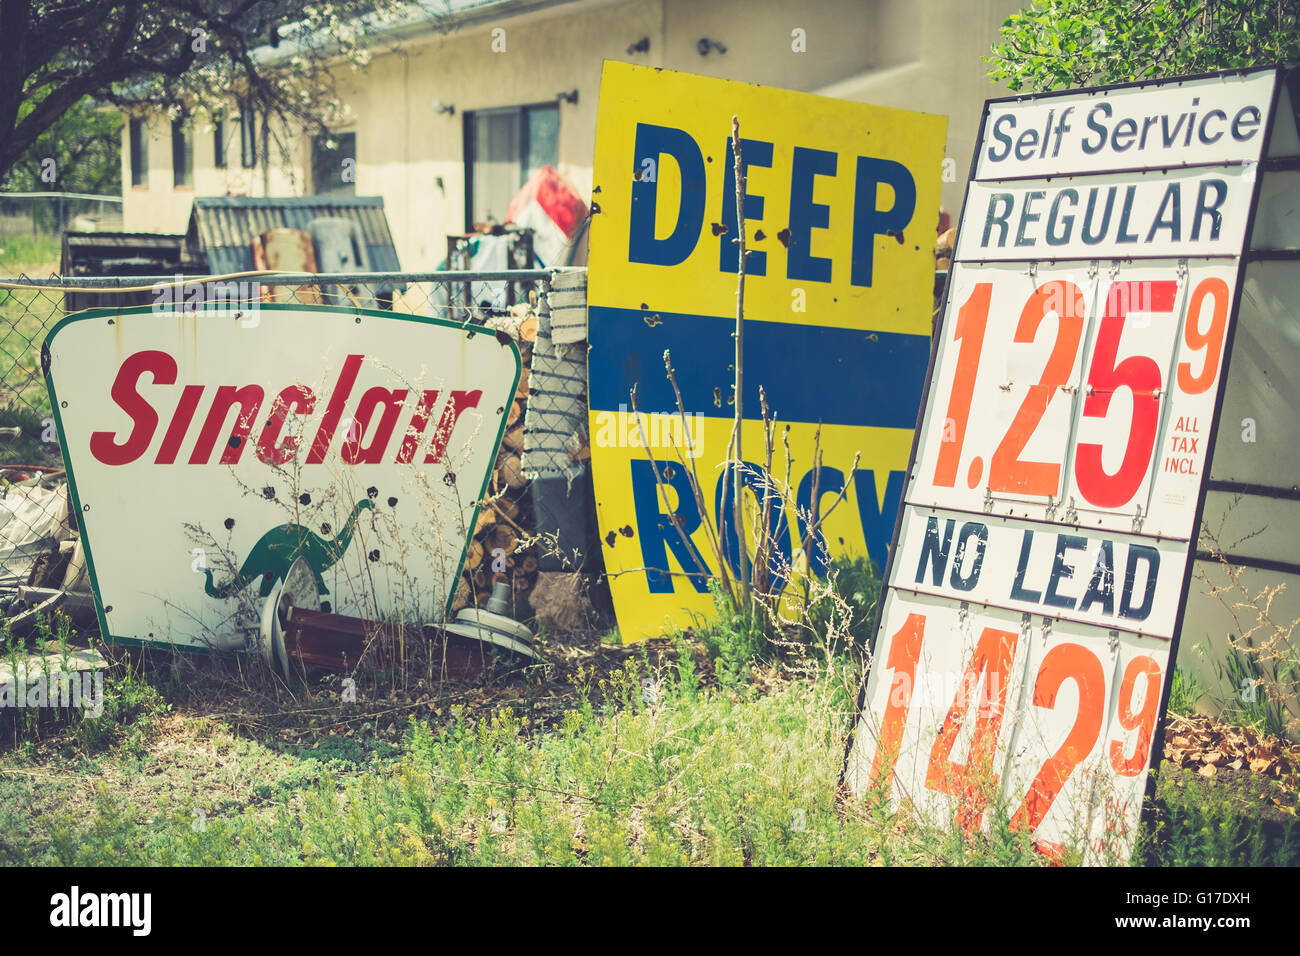 Gas Prices In California >> Vintage gas station signs on ground with cheap regular and no lead Stock Photo, Royalty Free ...